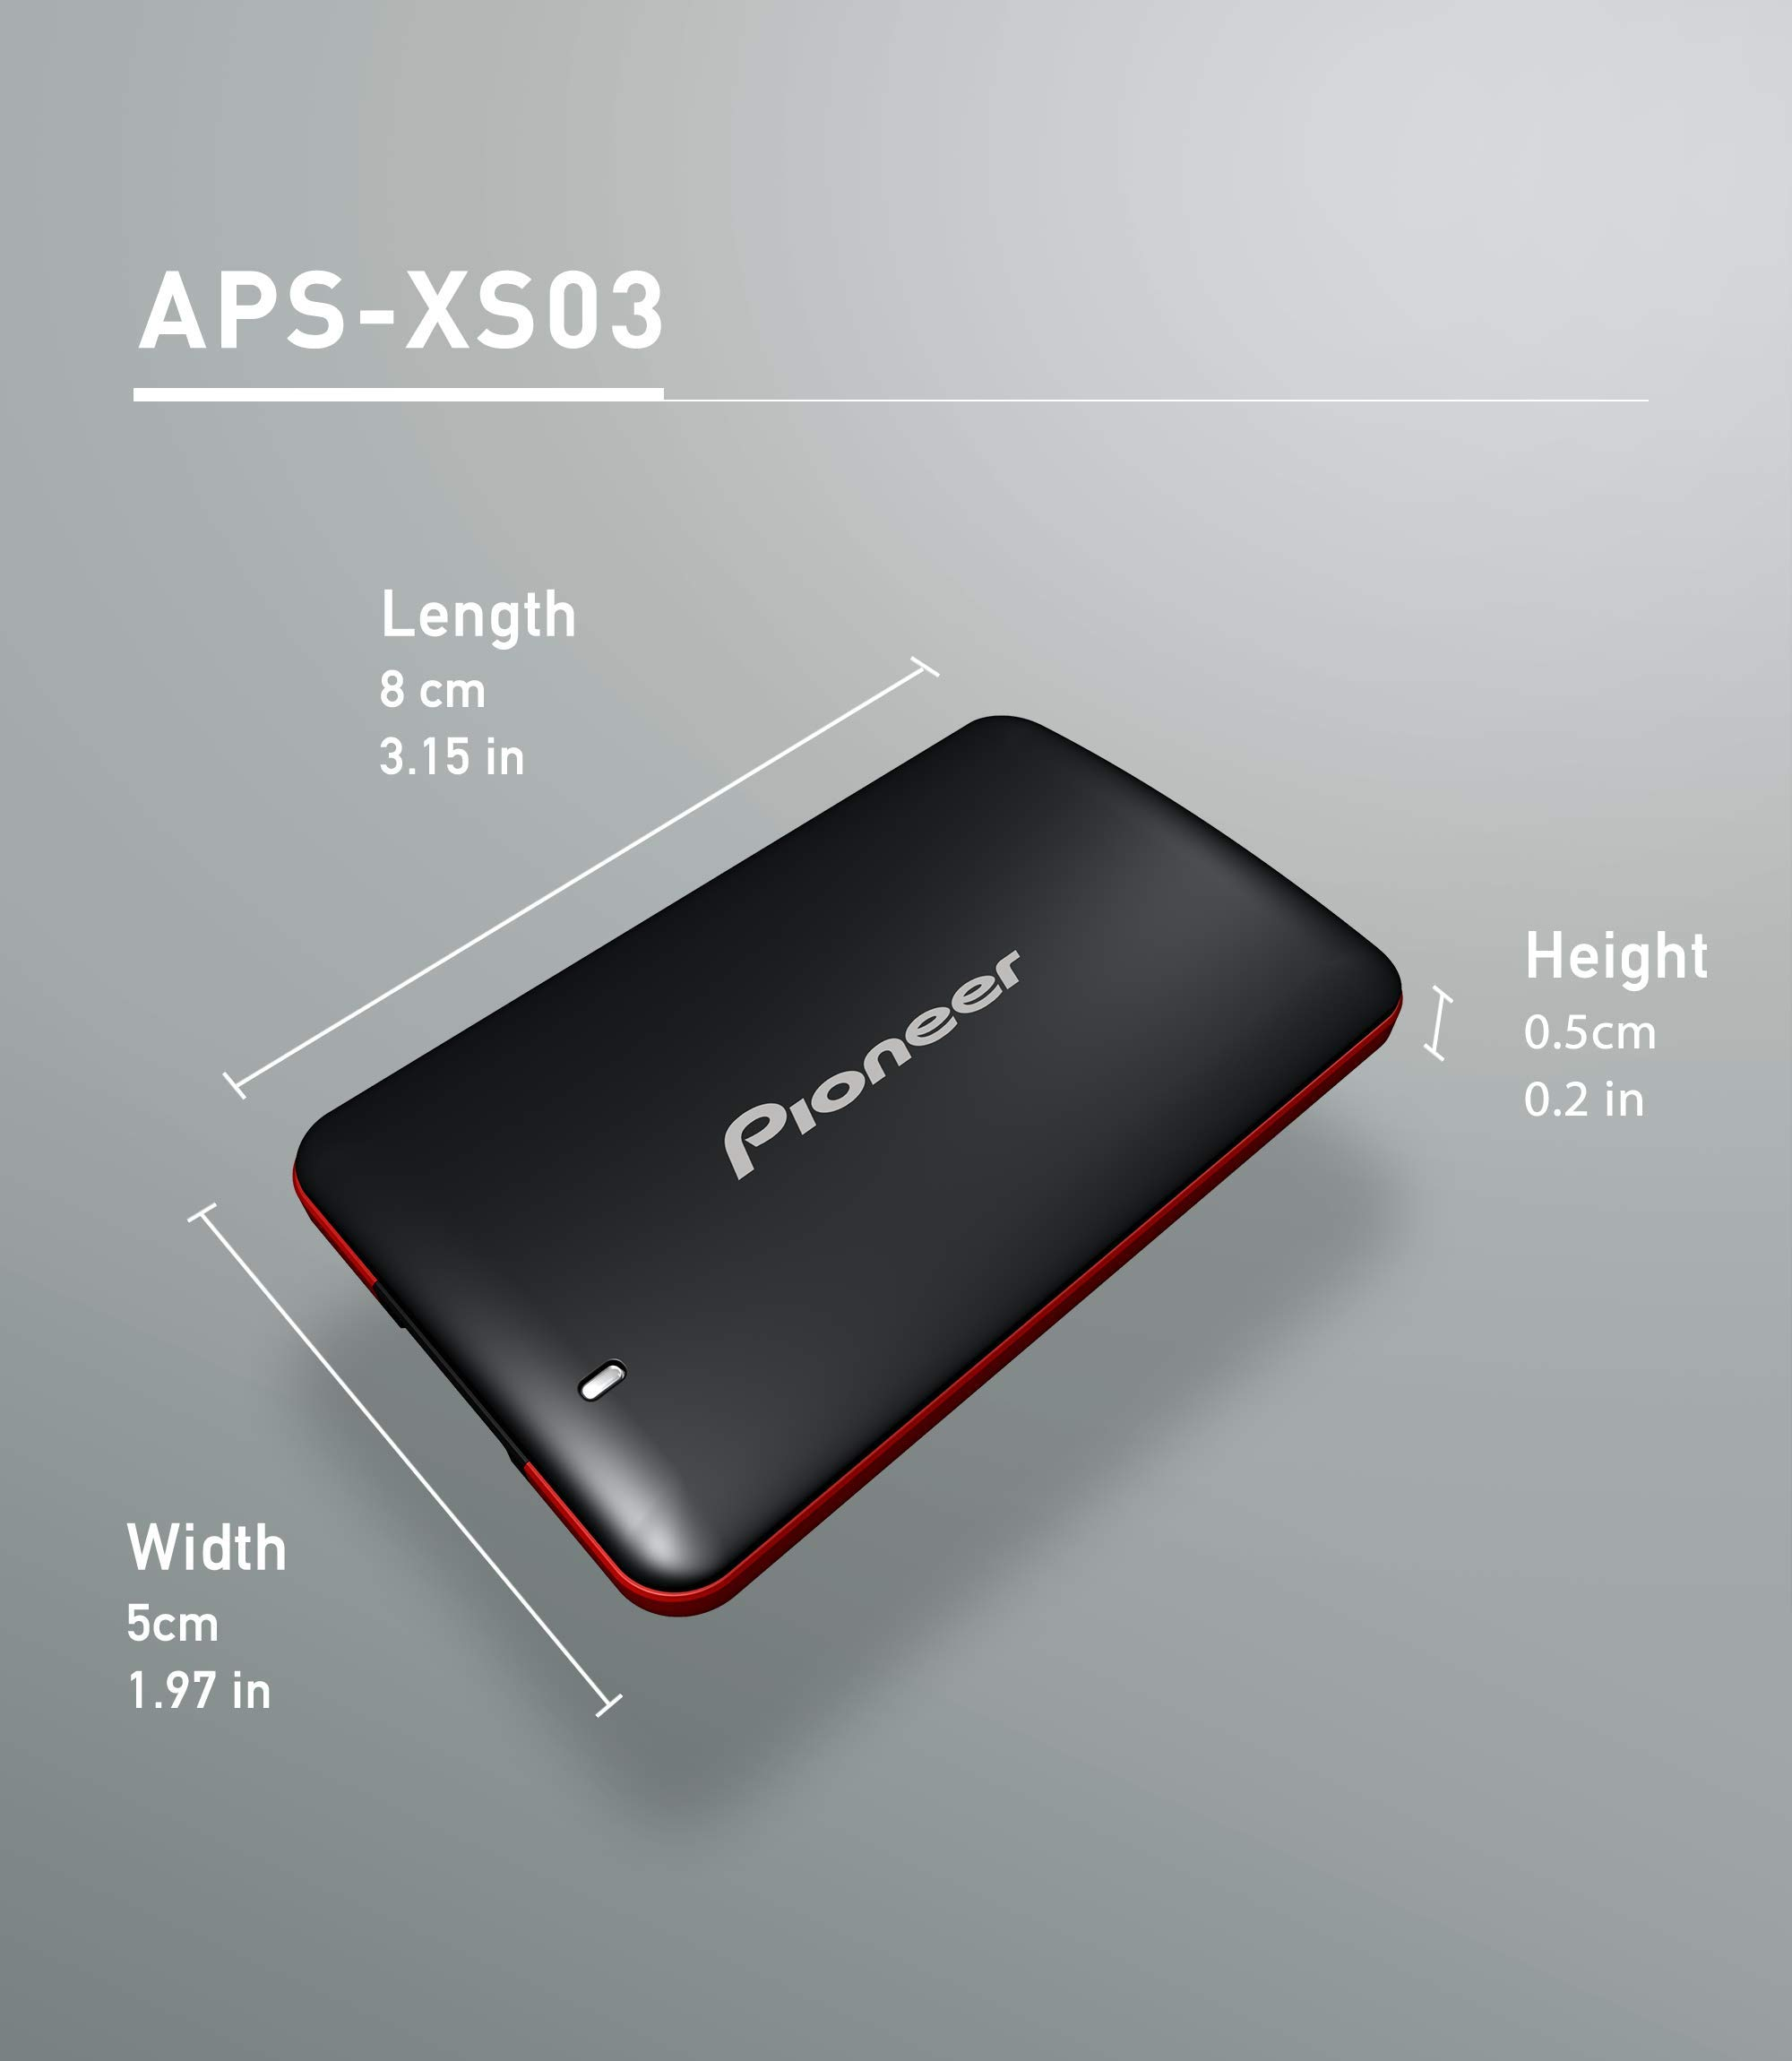 Pioneer 3D NAND External SSD(240 GB)-Portable Solid State Drive USB 3.1 Gen 1 (APS-XS03-240) by P (Image #3)